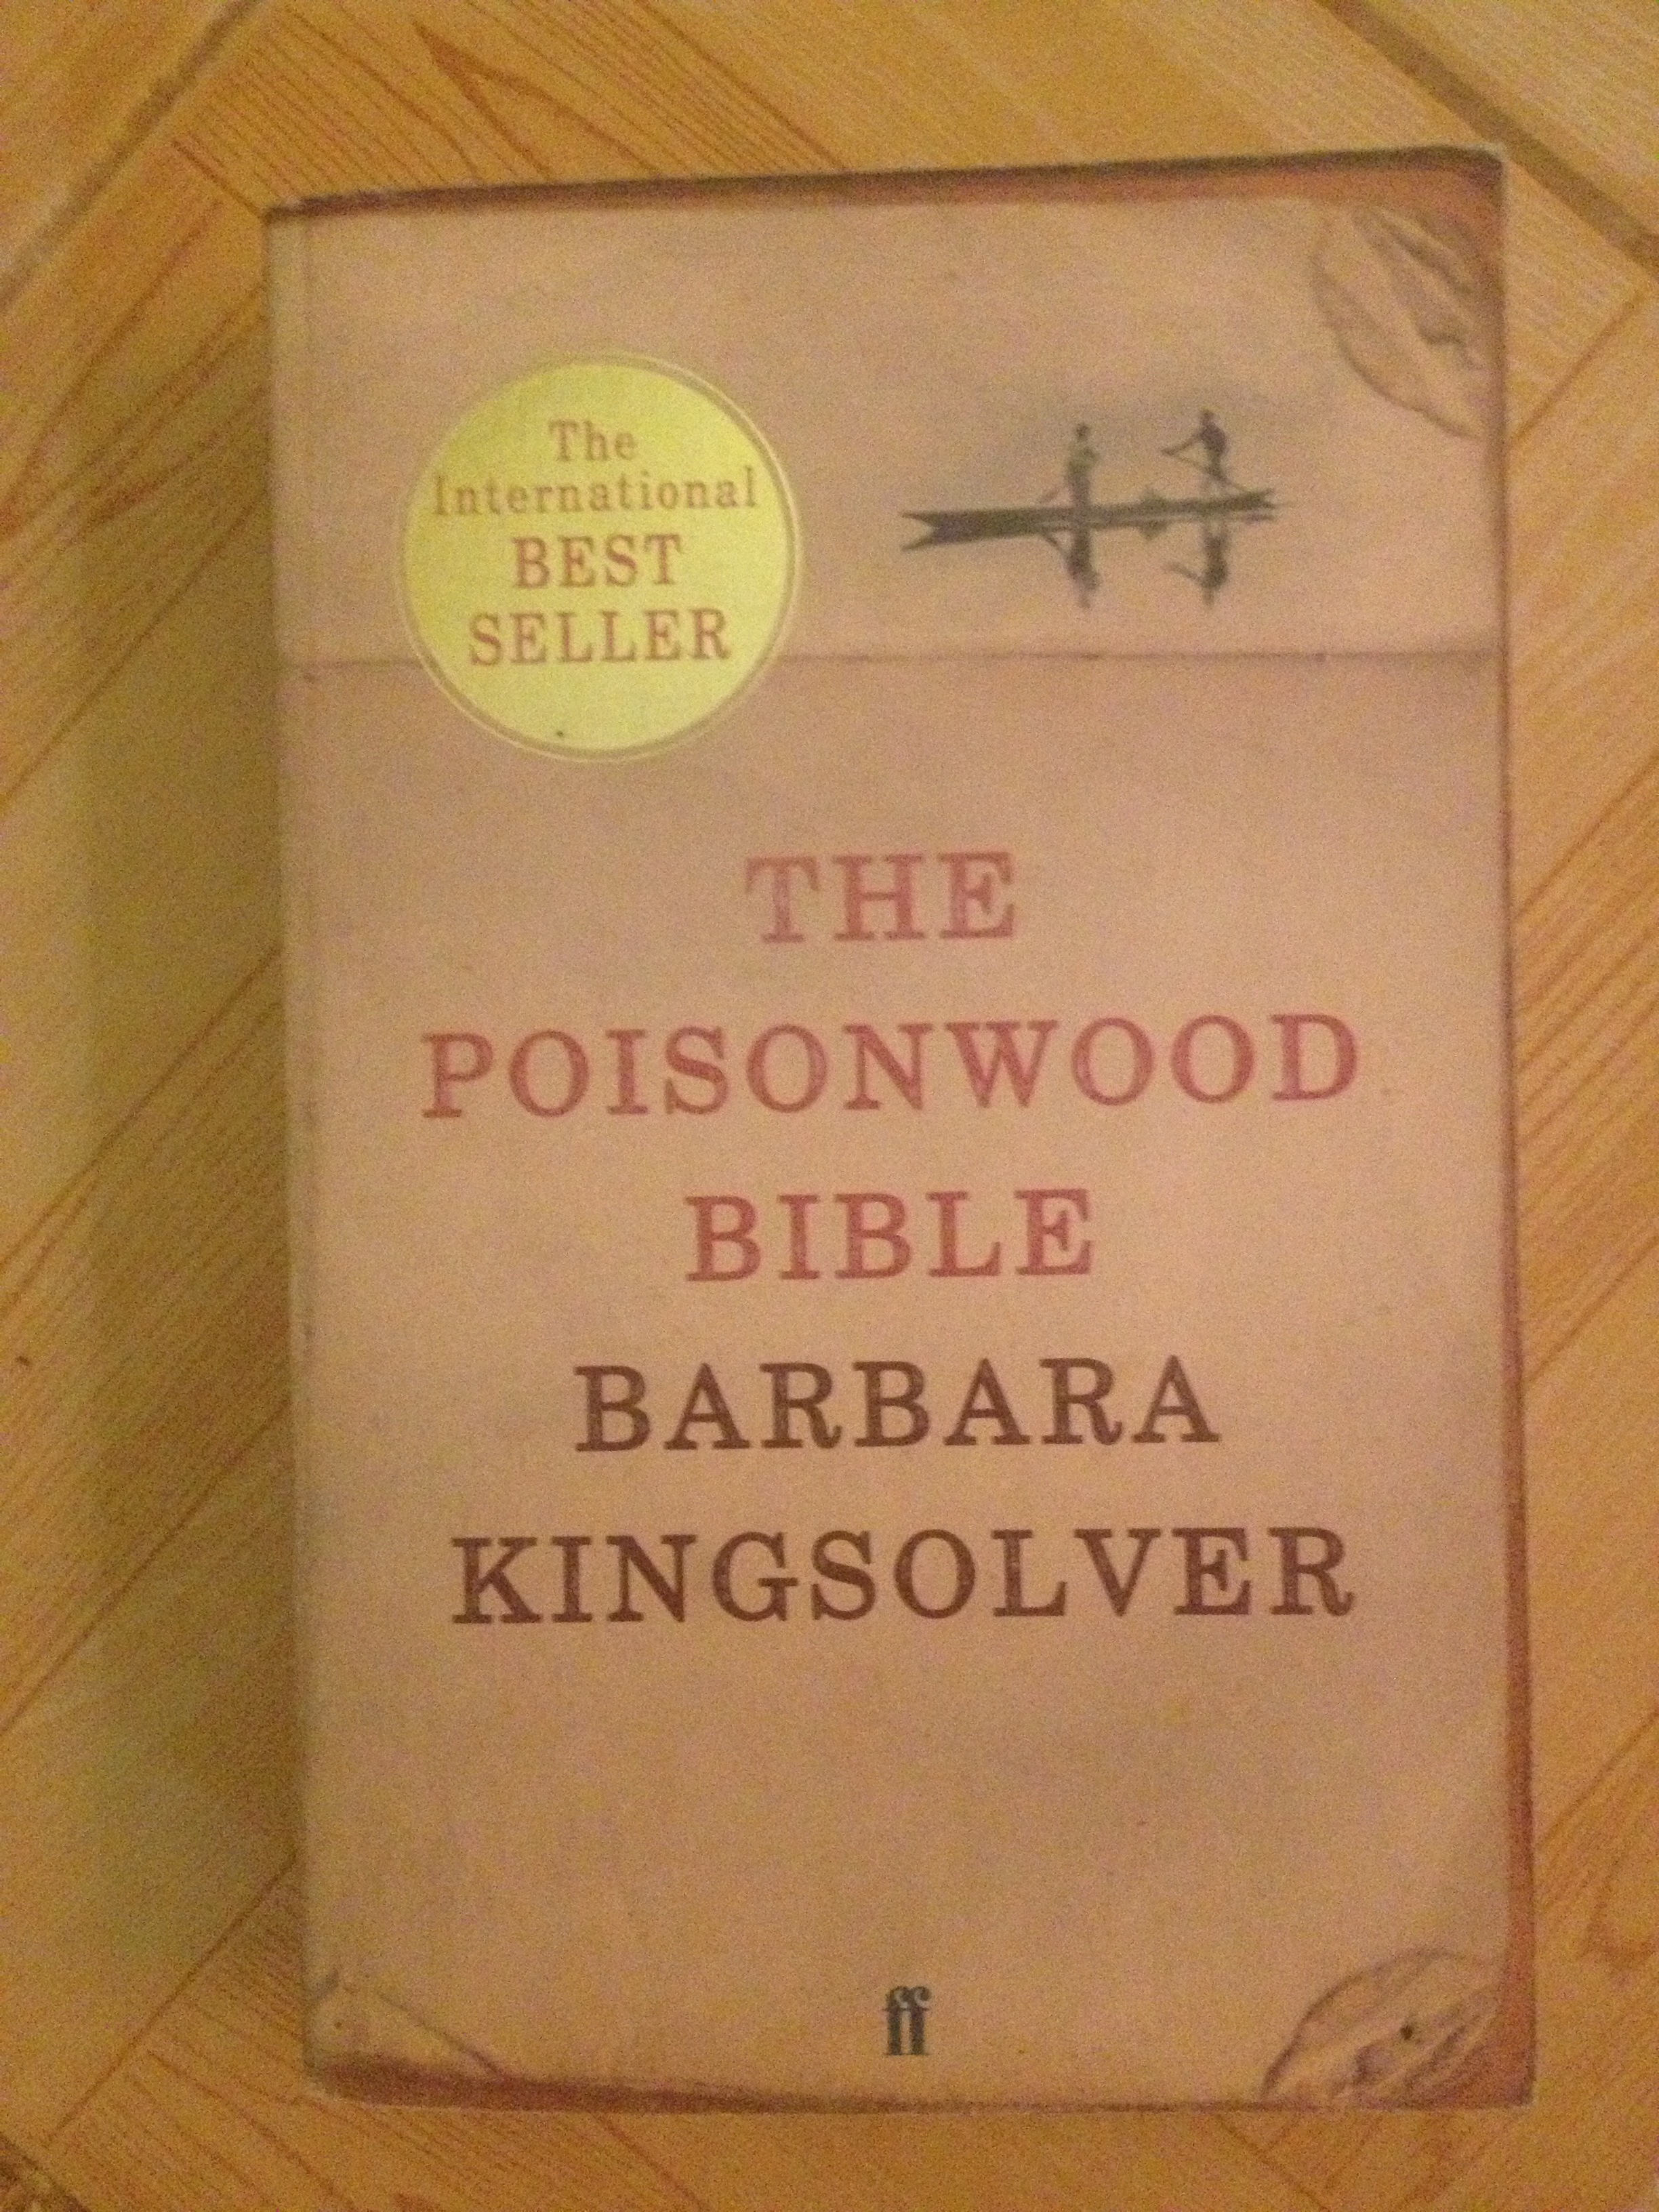 the poisonwood bible by barbara kingsolver contador harrison front cover of the latest version of the poisonwood bible by barbara kingsolver